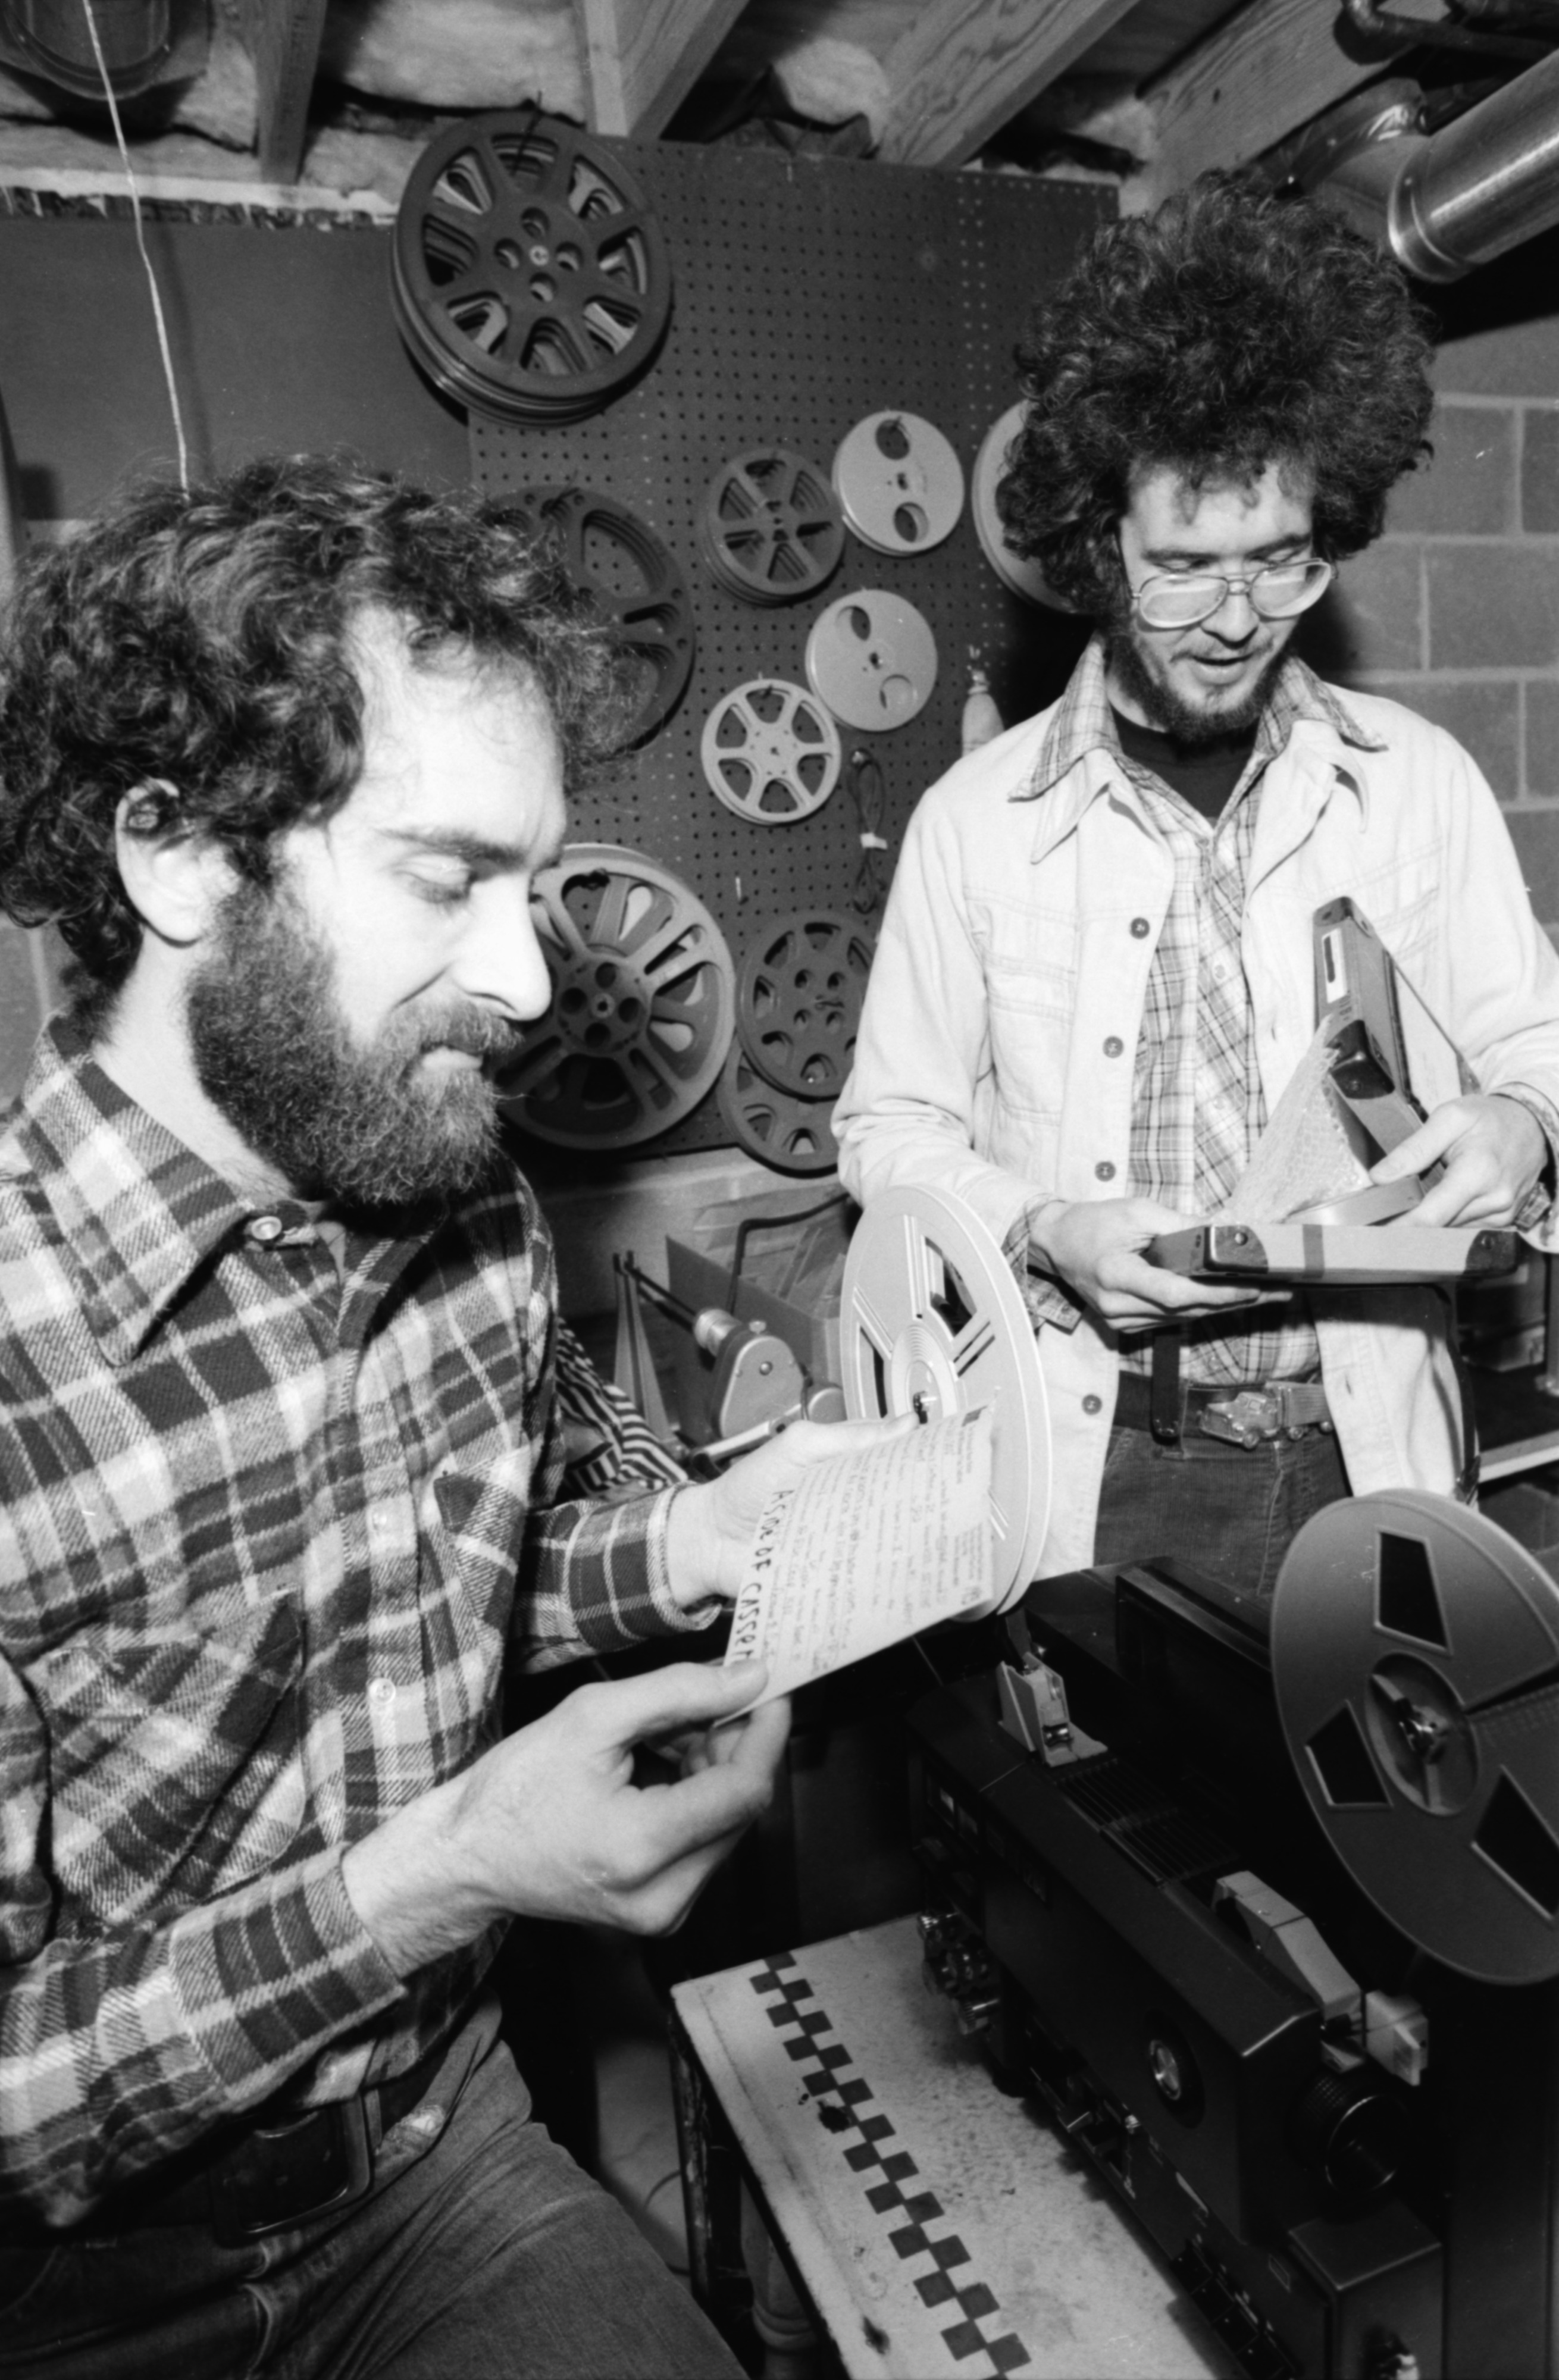 Tim Artist and Dan Gunning screen submissions to the 11th annual 8mm Film Festival, February 1981 image